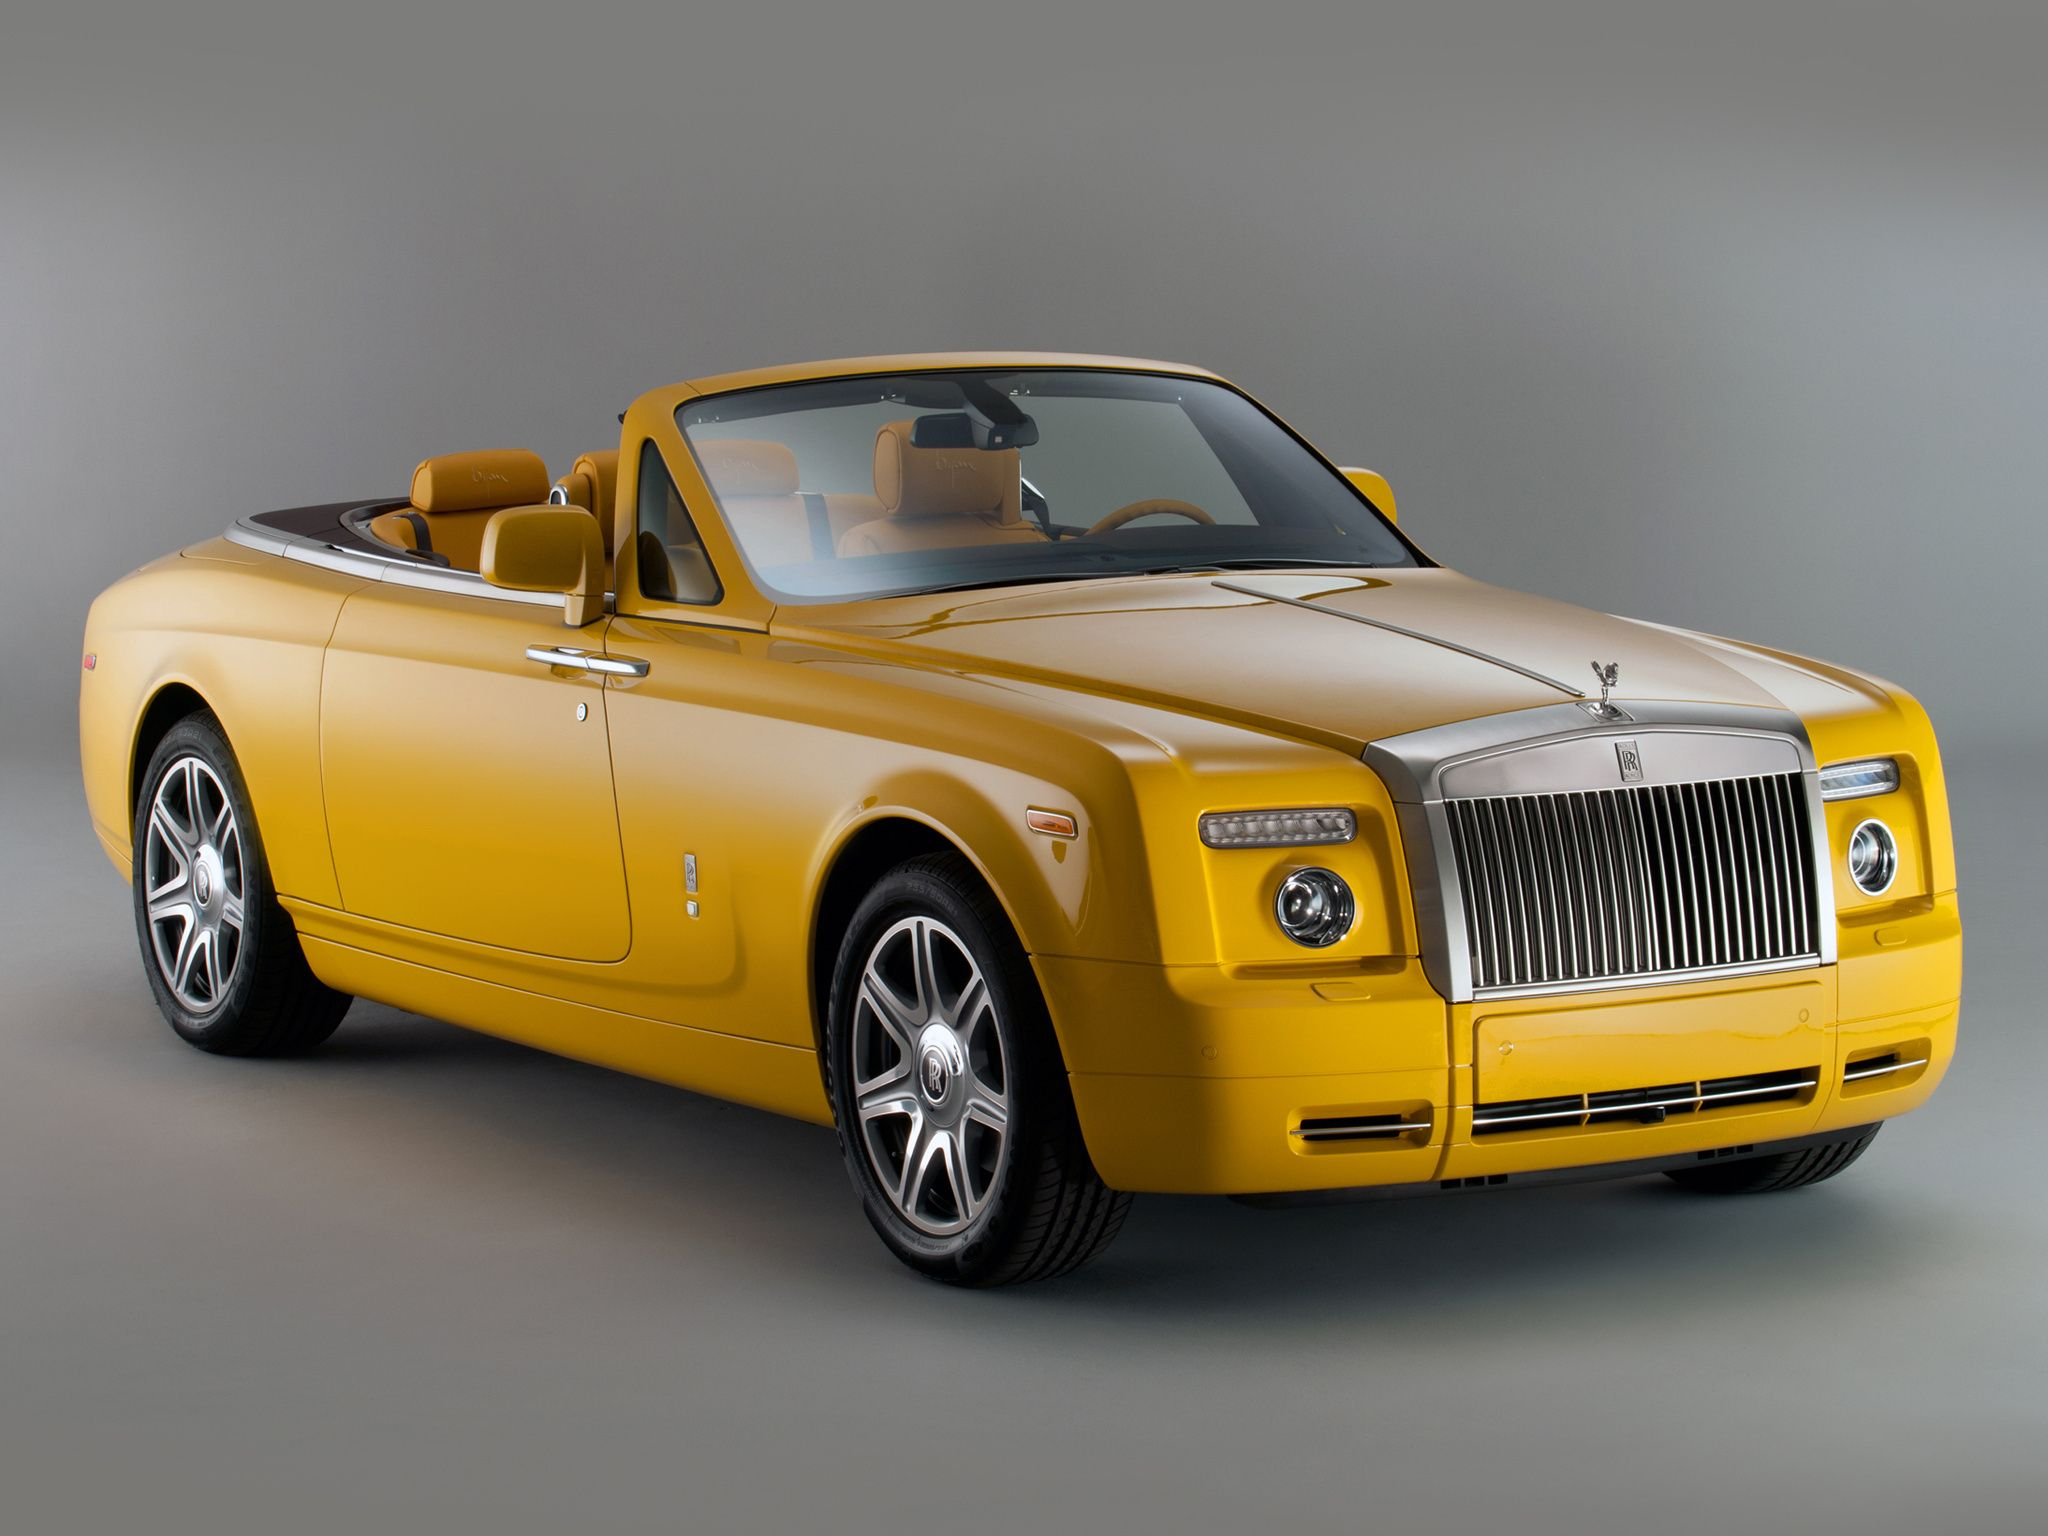 RollsRoyce Phantom Coupe Cool Hd Wallpaper Download